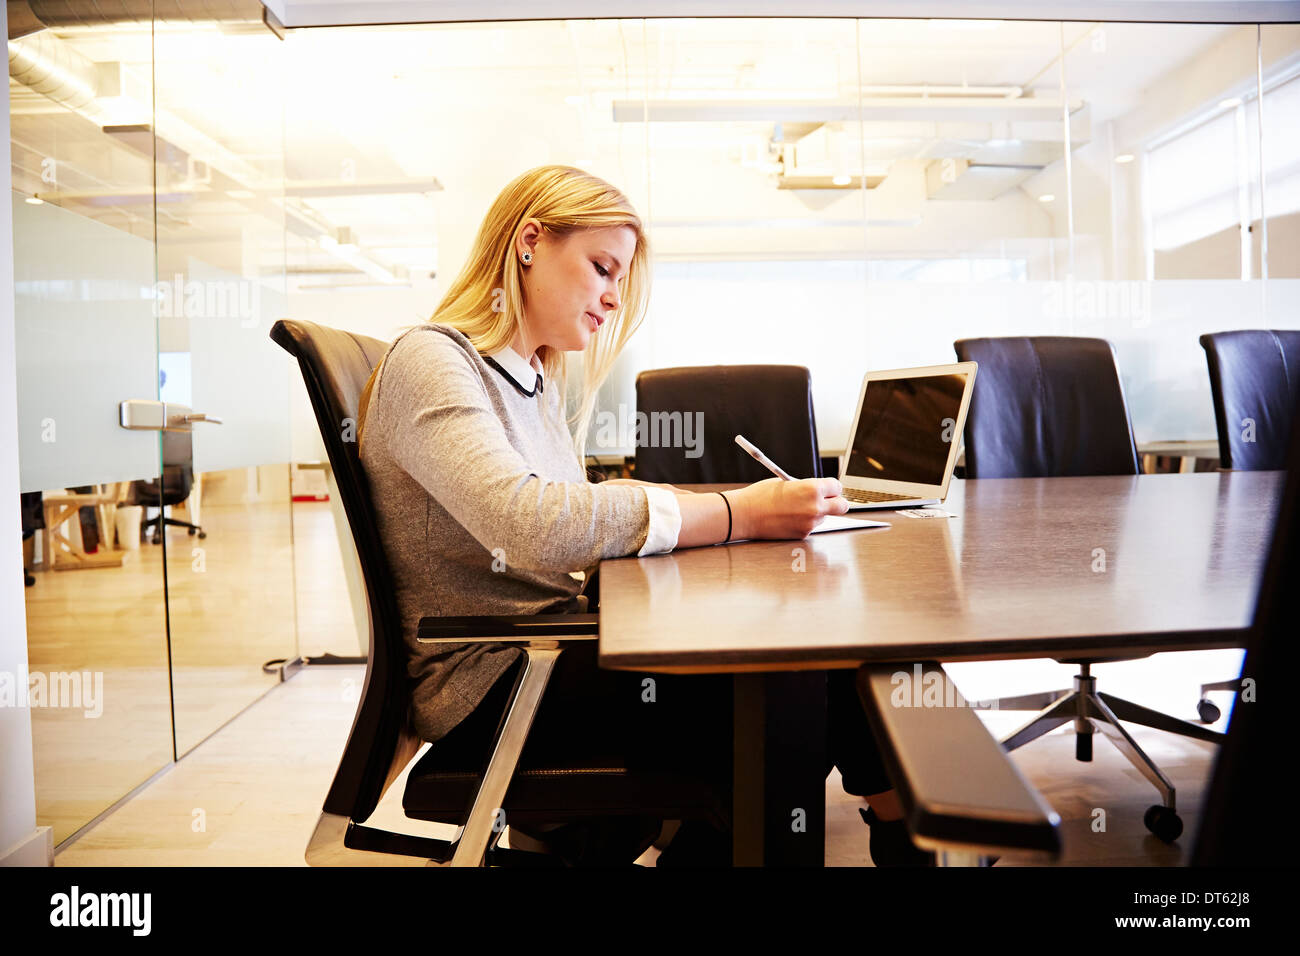 Young woman working at table - Stock Image